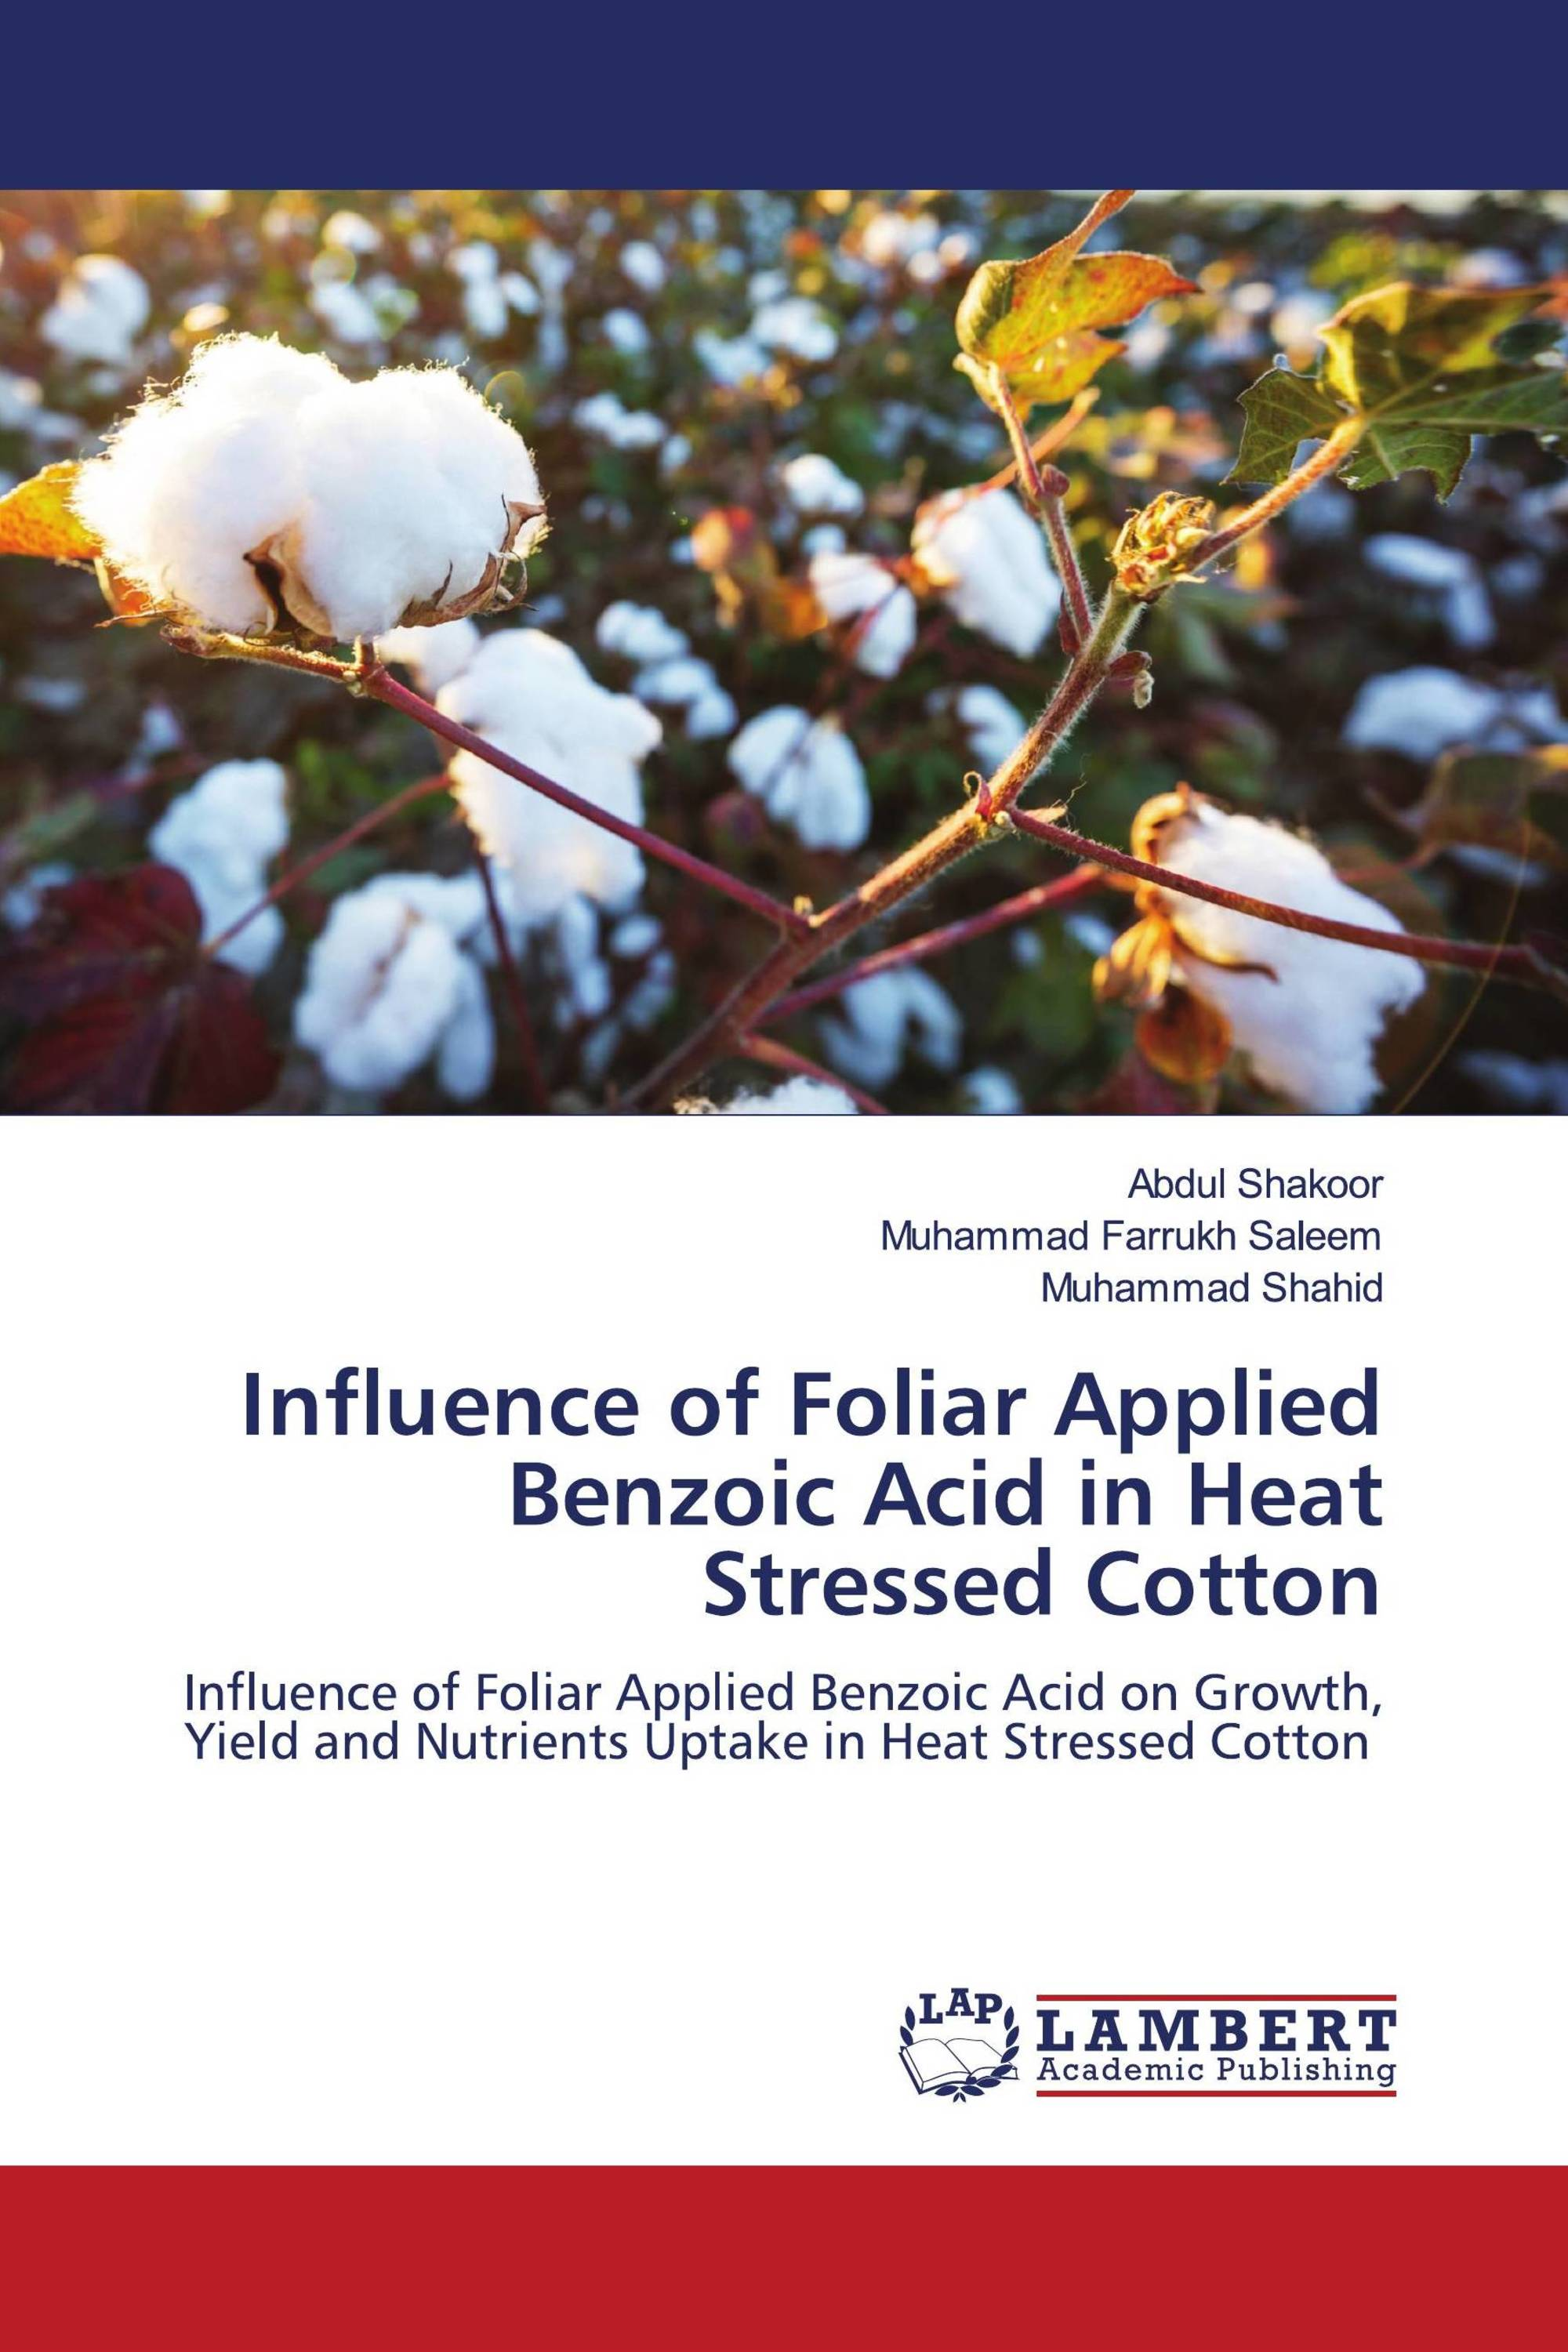 Influence of Foliar Applied Benzoic Acid in Heat Stressed Cotton